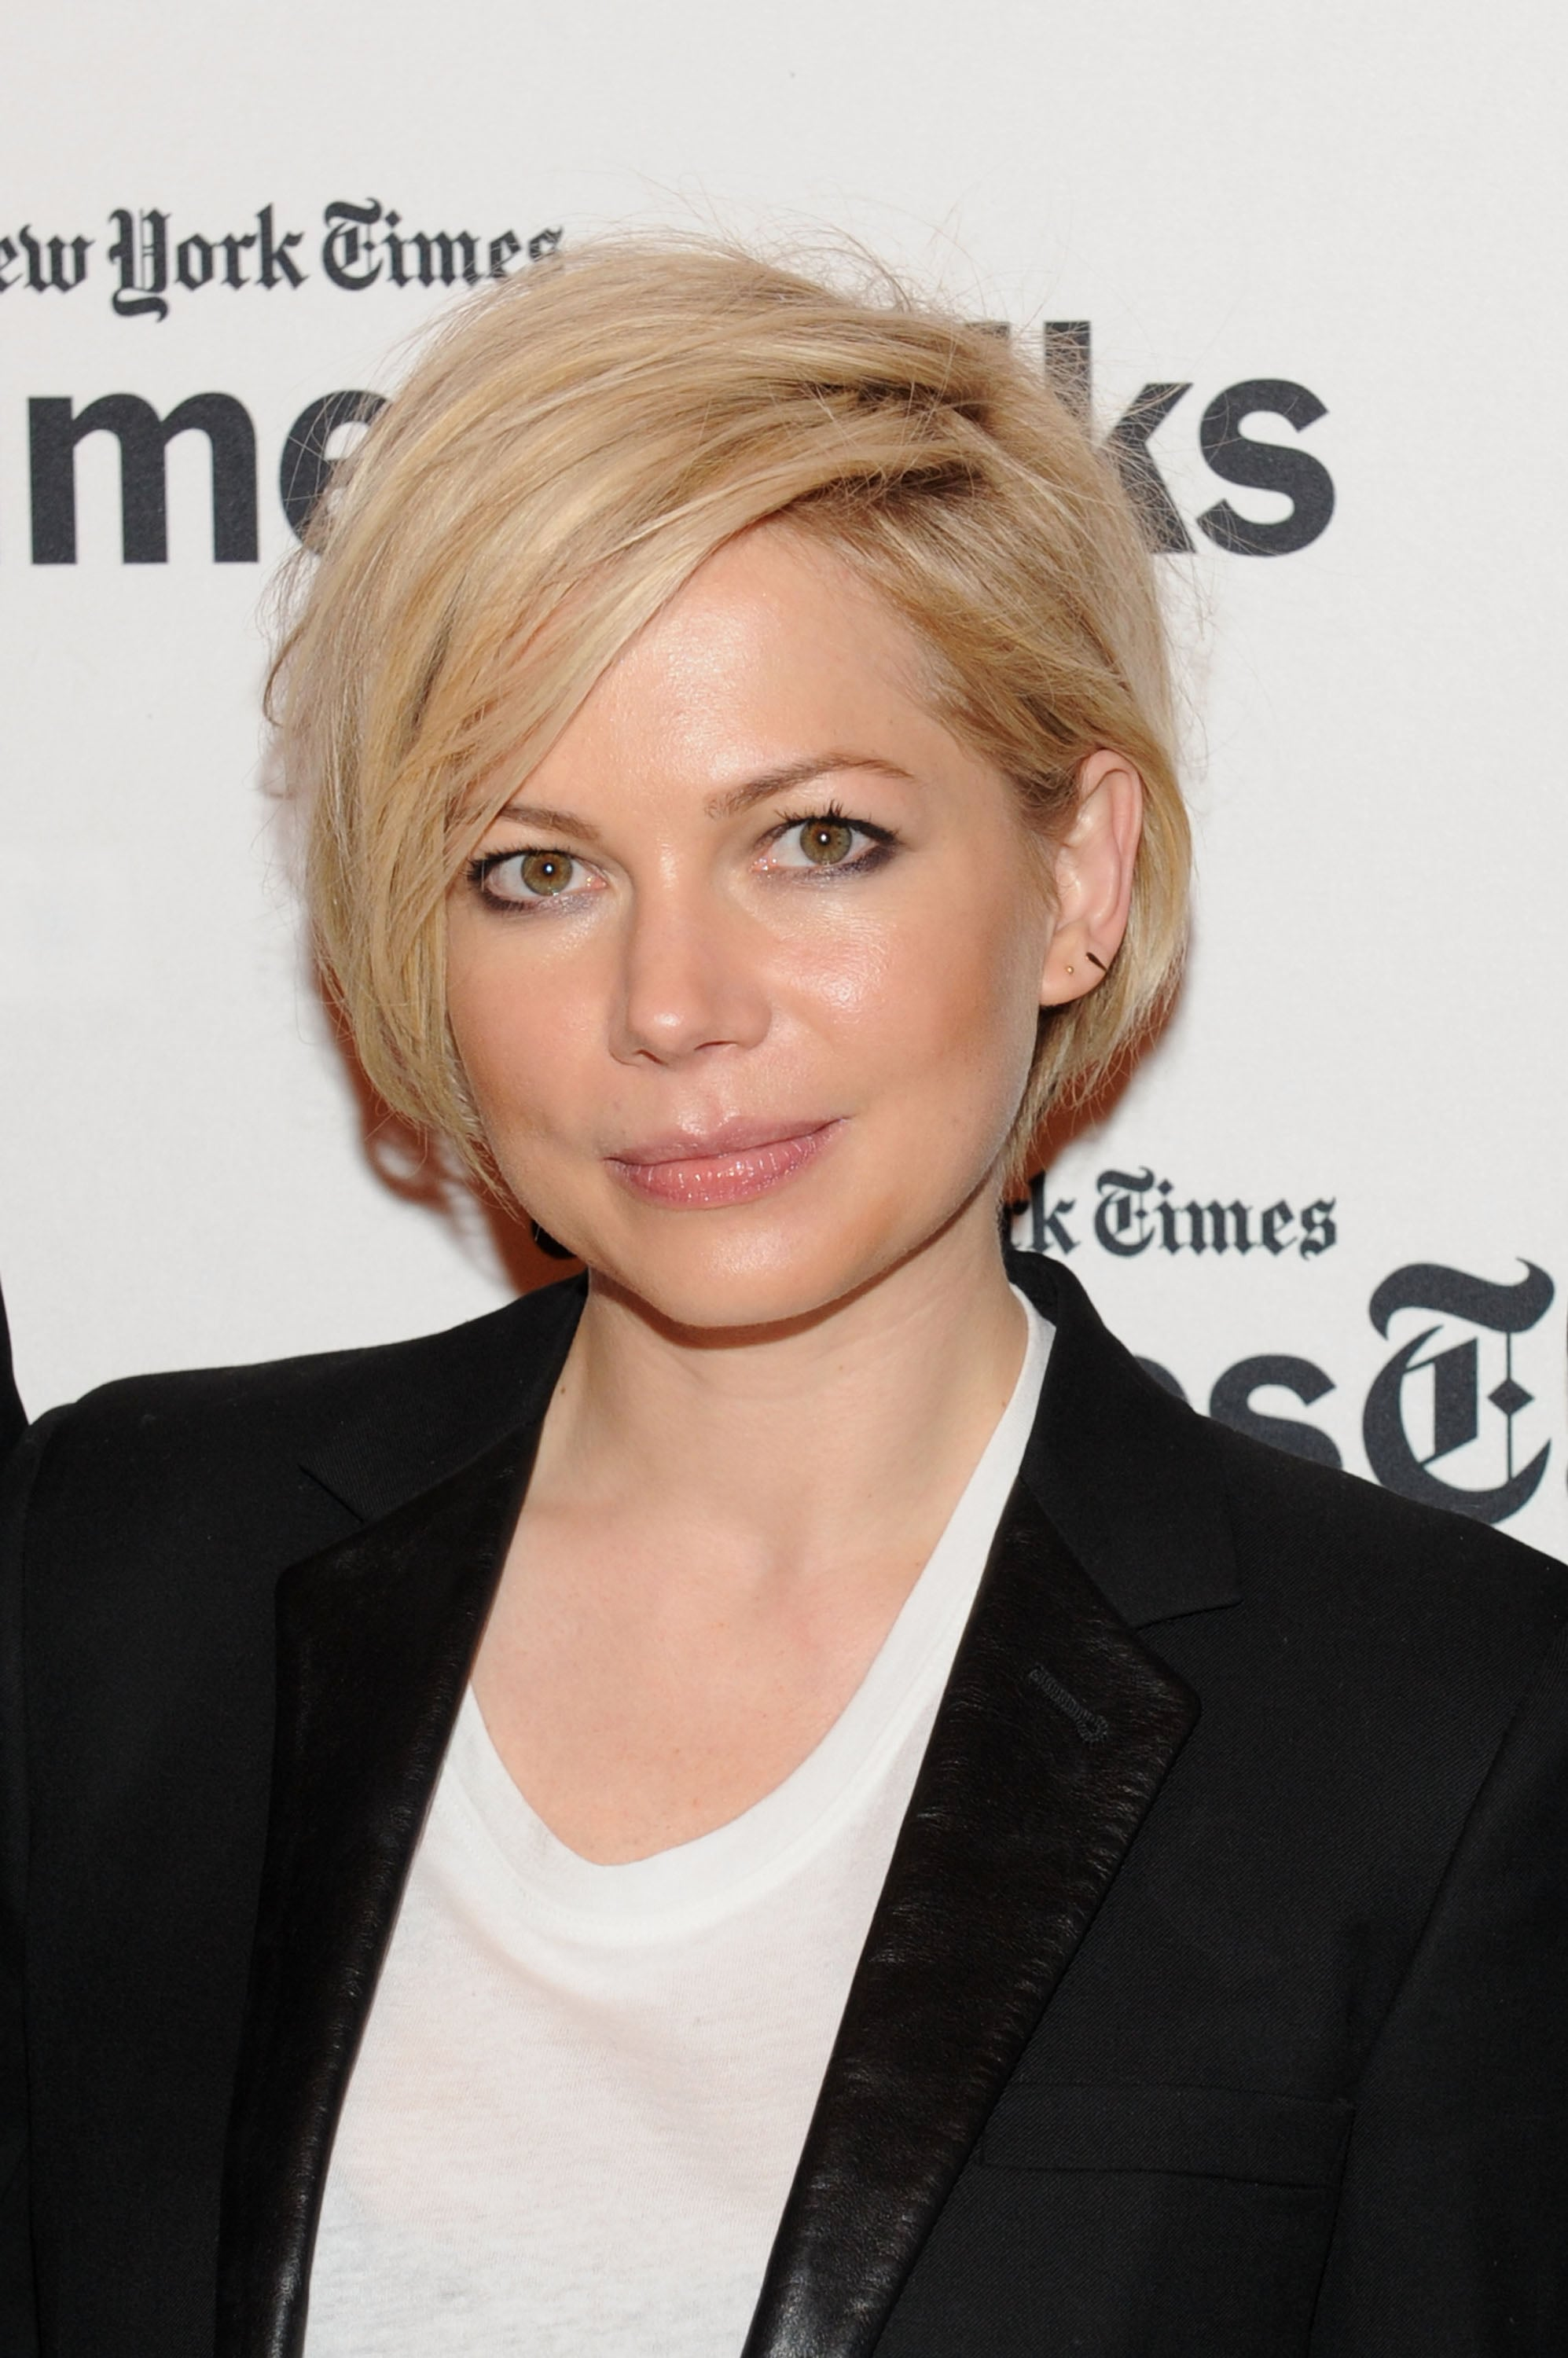 pictures 2014 Michelle Williams Short Hair Styles: Pixie Haircut